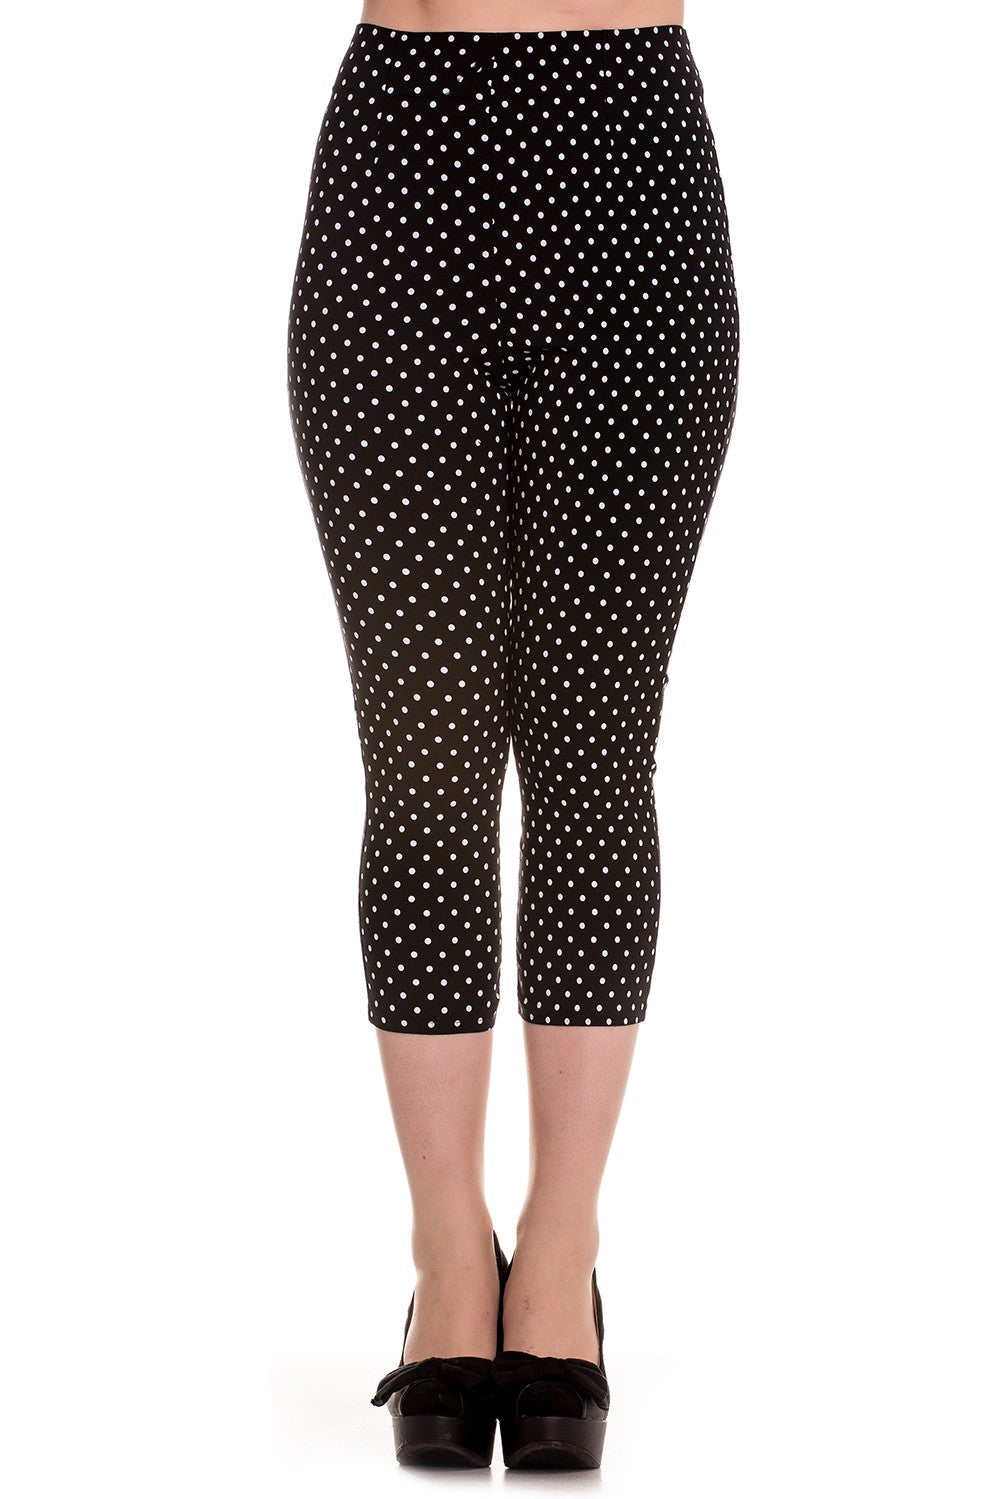 Kay Black and White Polka Dot Capris